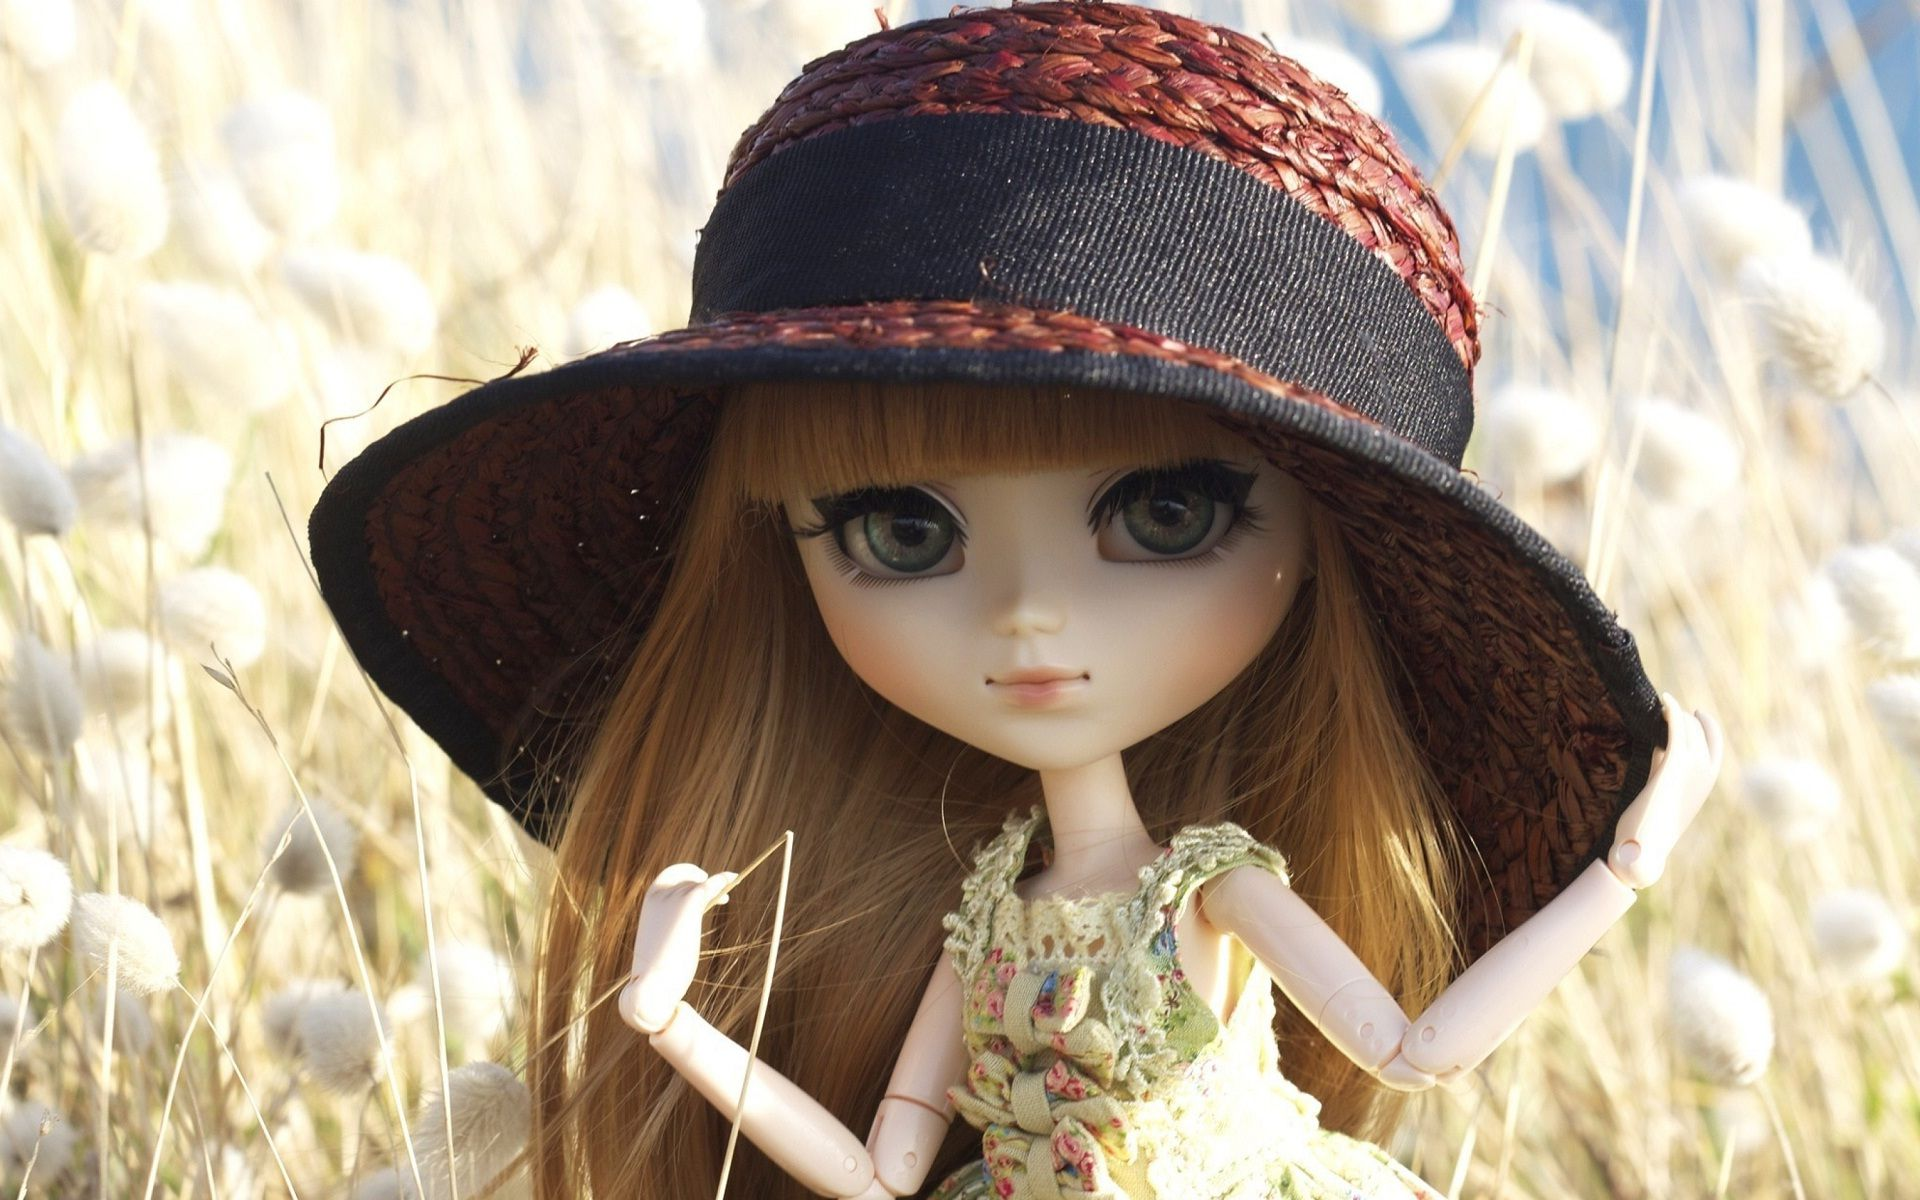 new cute and sweet dolls wallpapers images (8) - hd wallpapers buzz